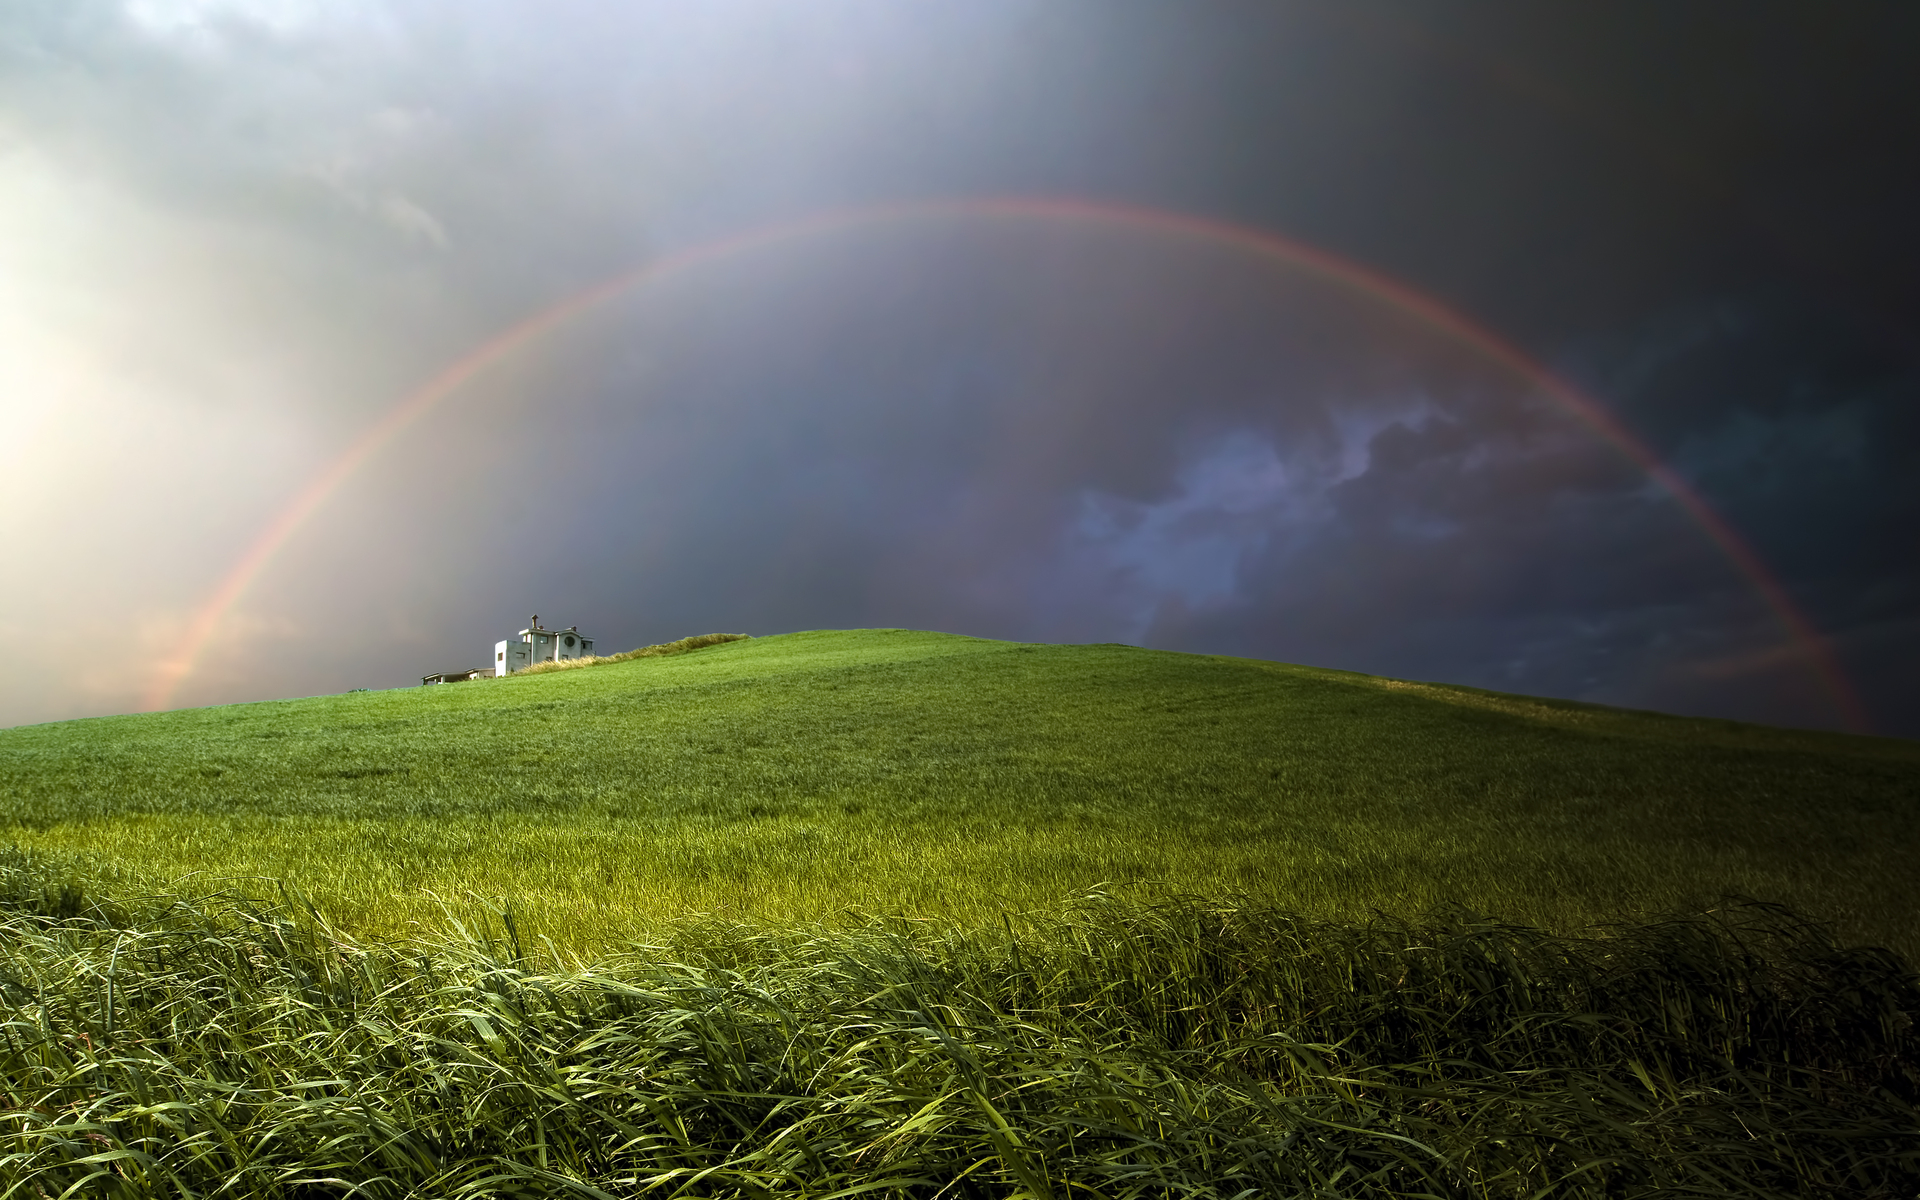 Hd Wallpapers Of Rain With Quotes Rainbow Computer Wallpapers Desktop Backgrounds